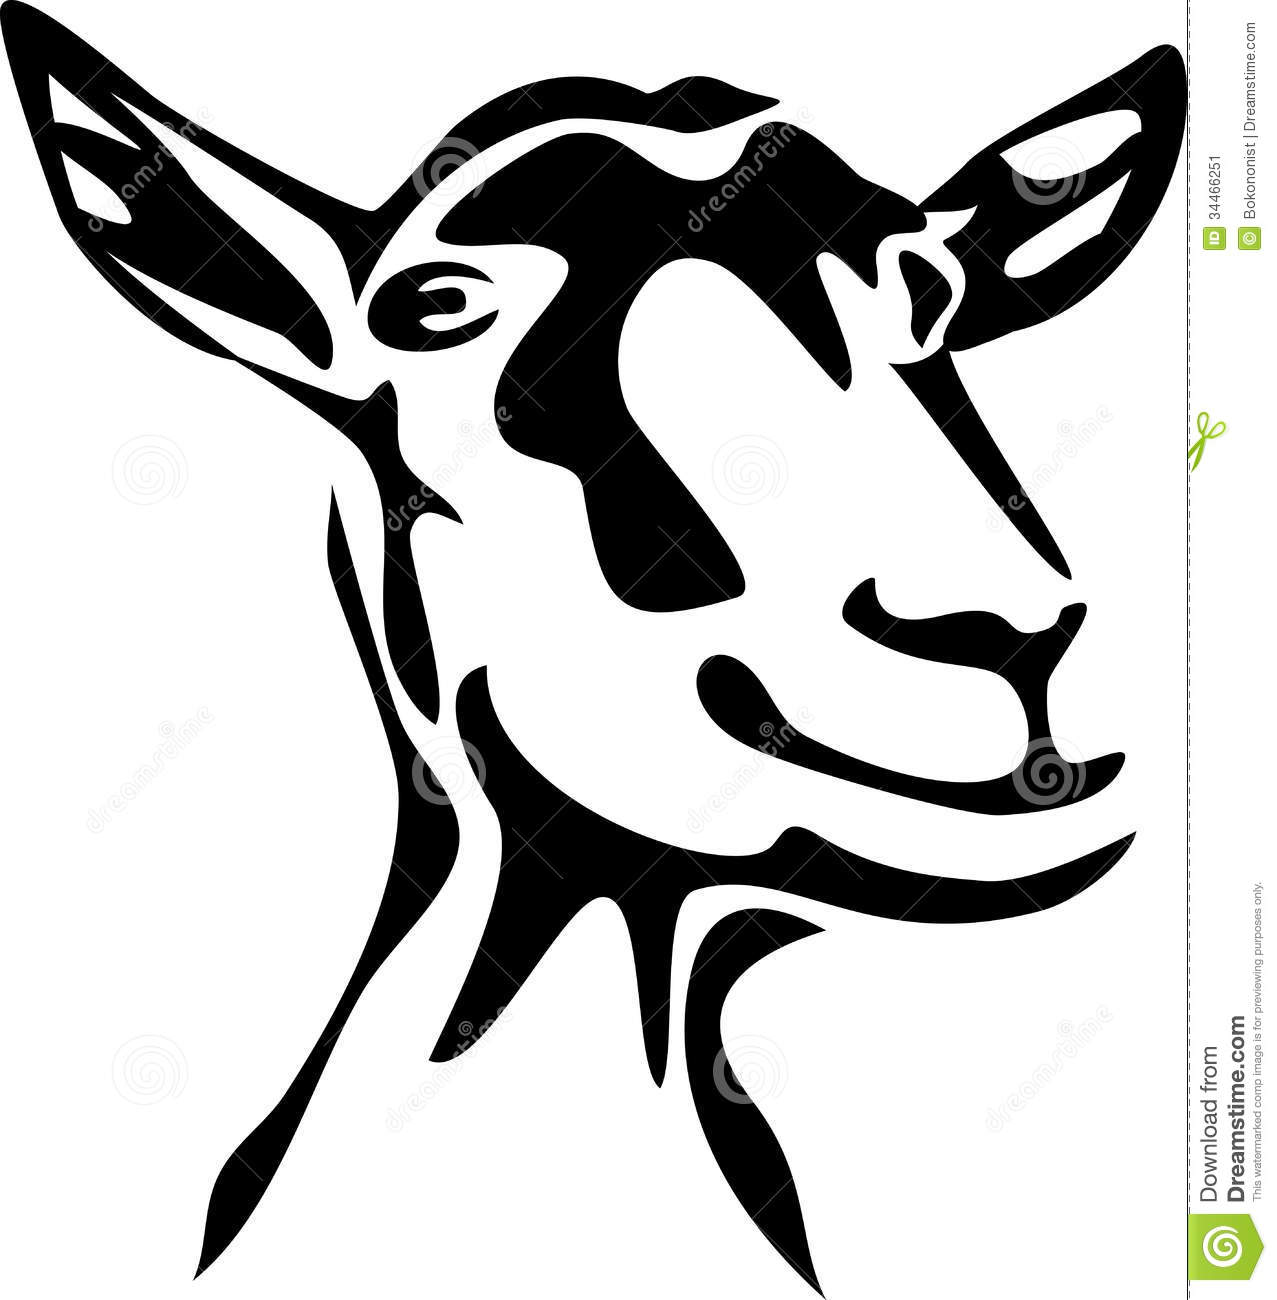 Goats Head clipart  Of Goat Image: Stock